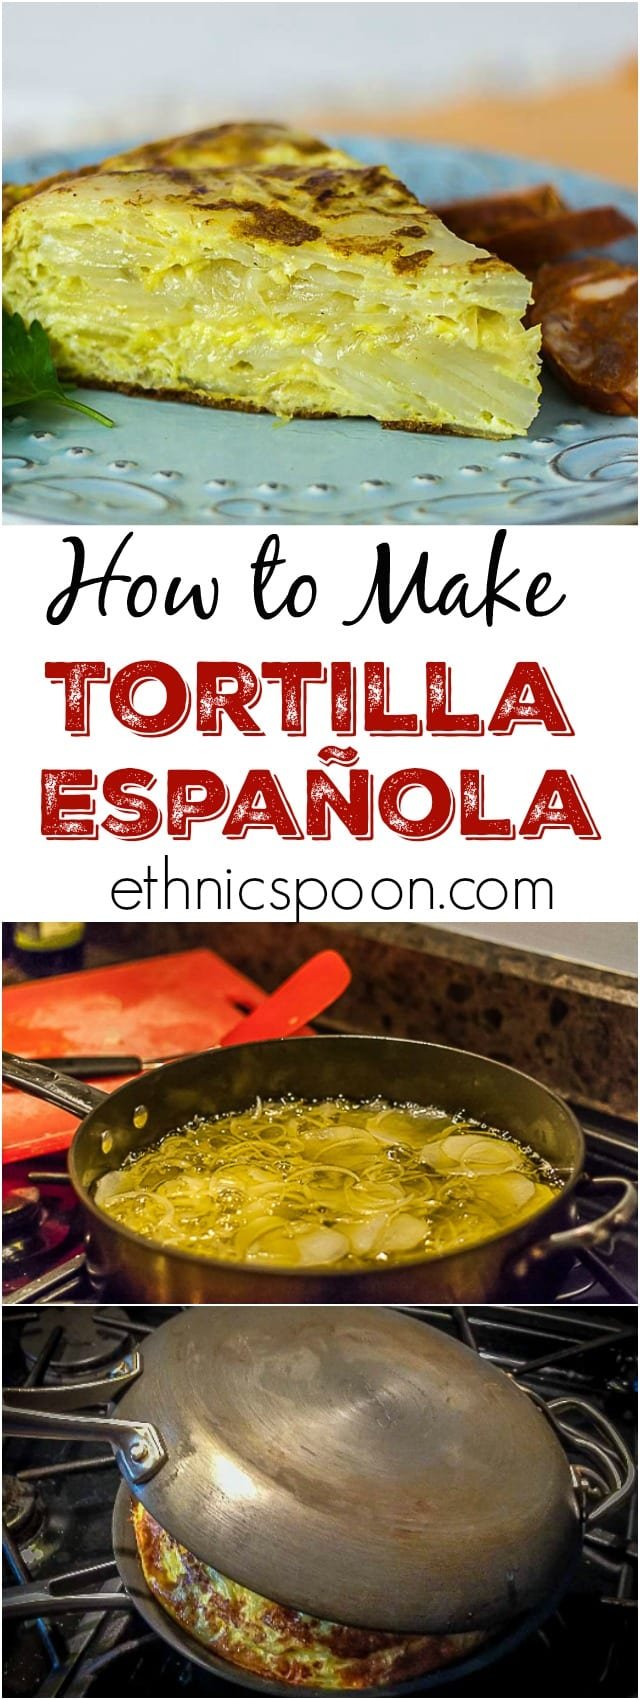 Learn how to make this Spanish tapas classic. Layers of creamy egg, potato, and onion come together in this pie. | ethnicspoon.com #potatopie #tapas #spanishfood